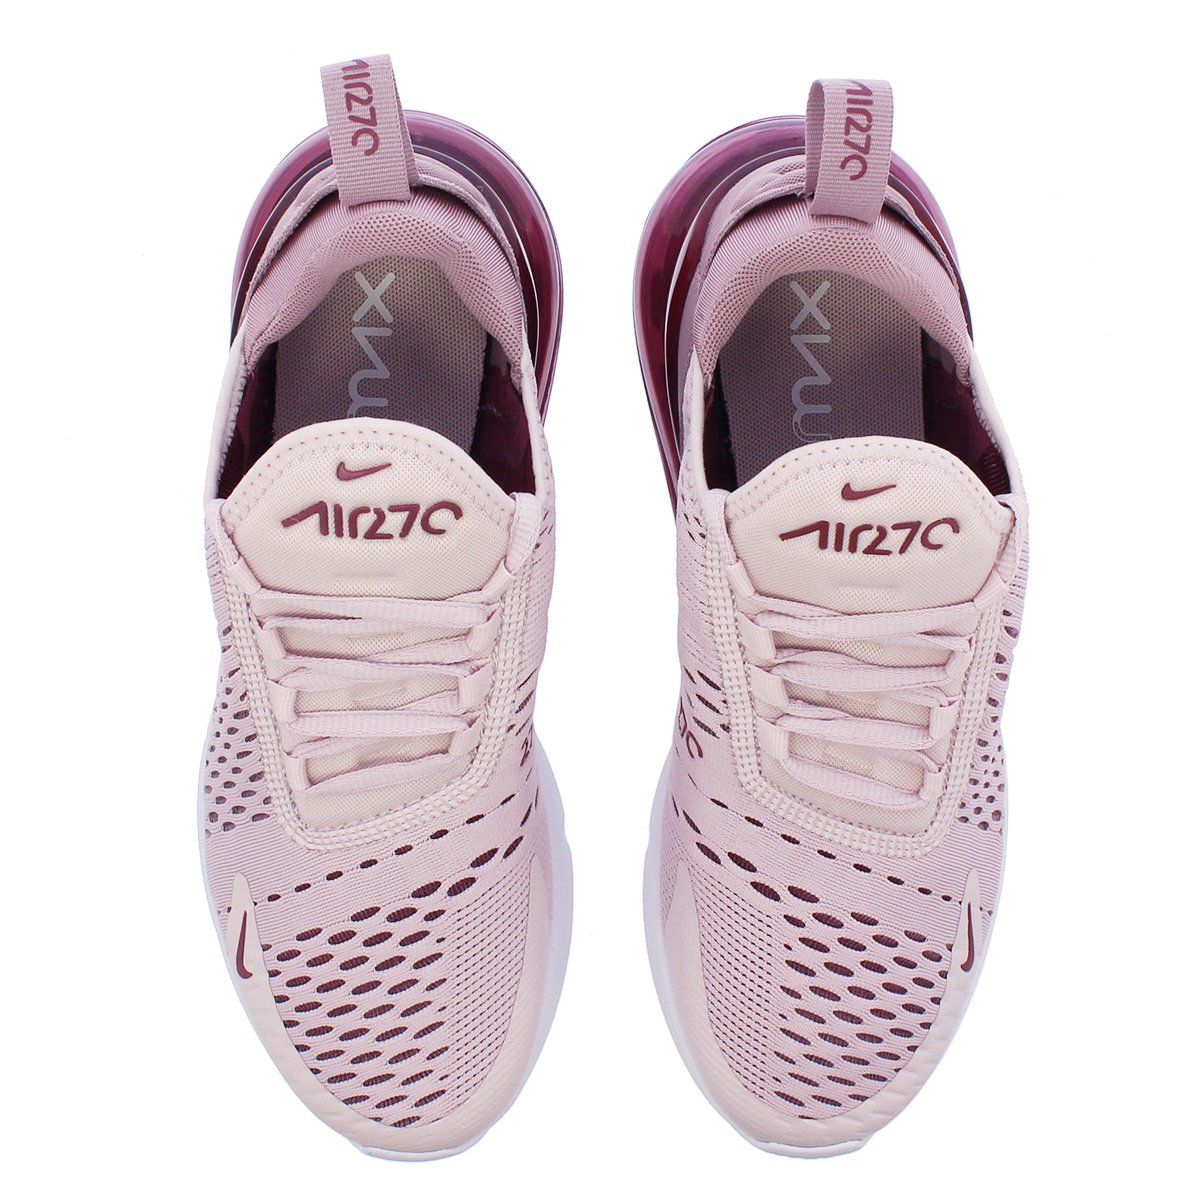 separation shoes 72f5c b41e3 NIKE WMNS AIR MAX 270 Nike women Air Max 270 BARELY ROSE/WHITE/VINTAGE WINE  ah6789-601-l